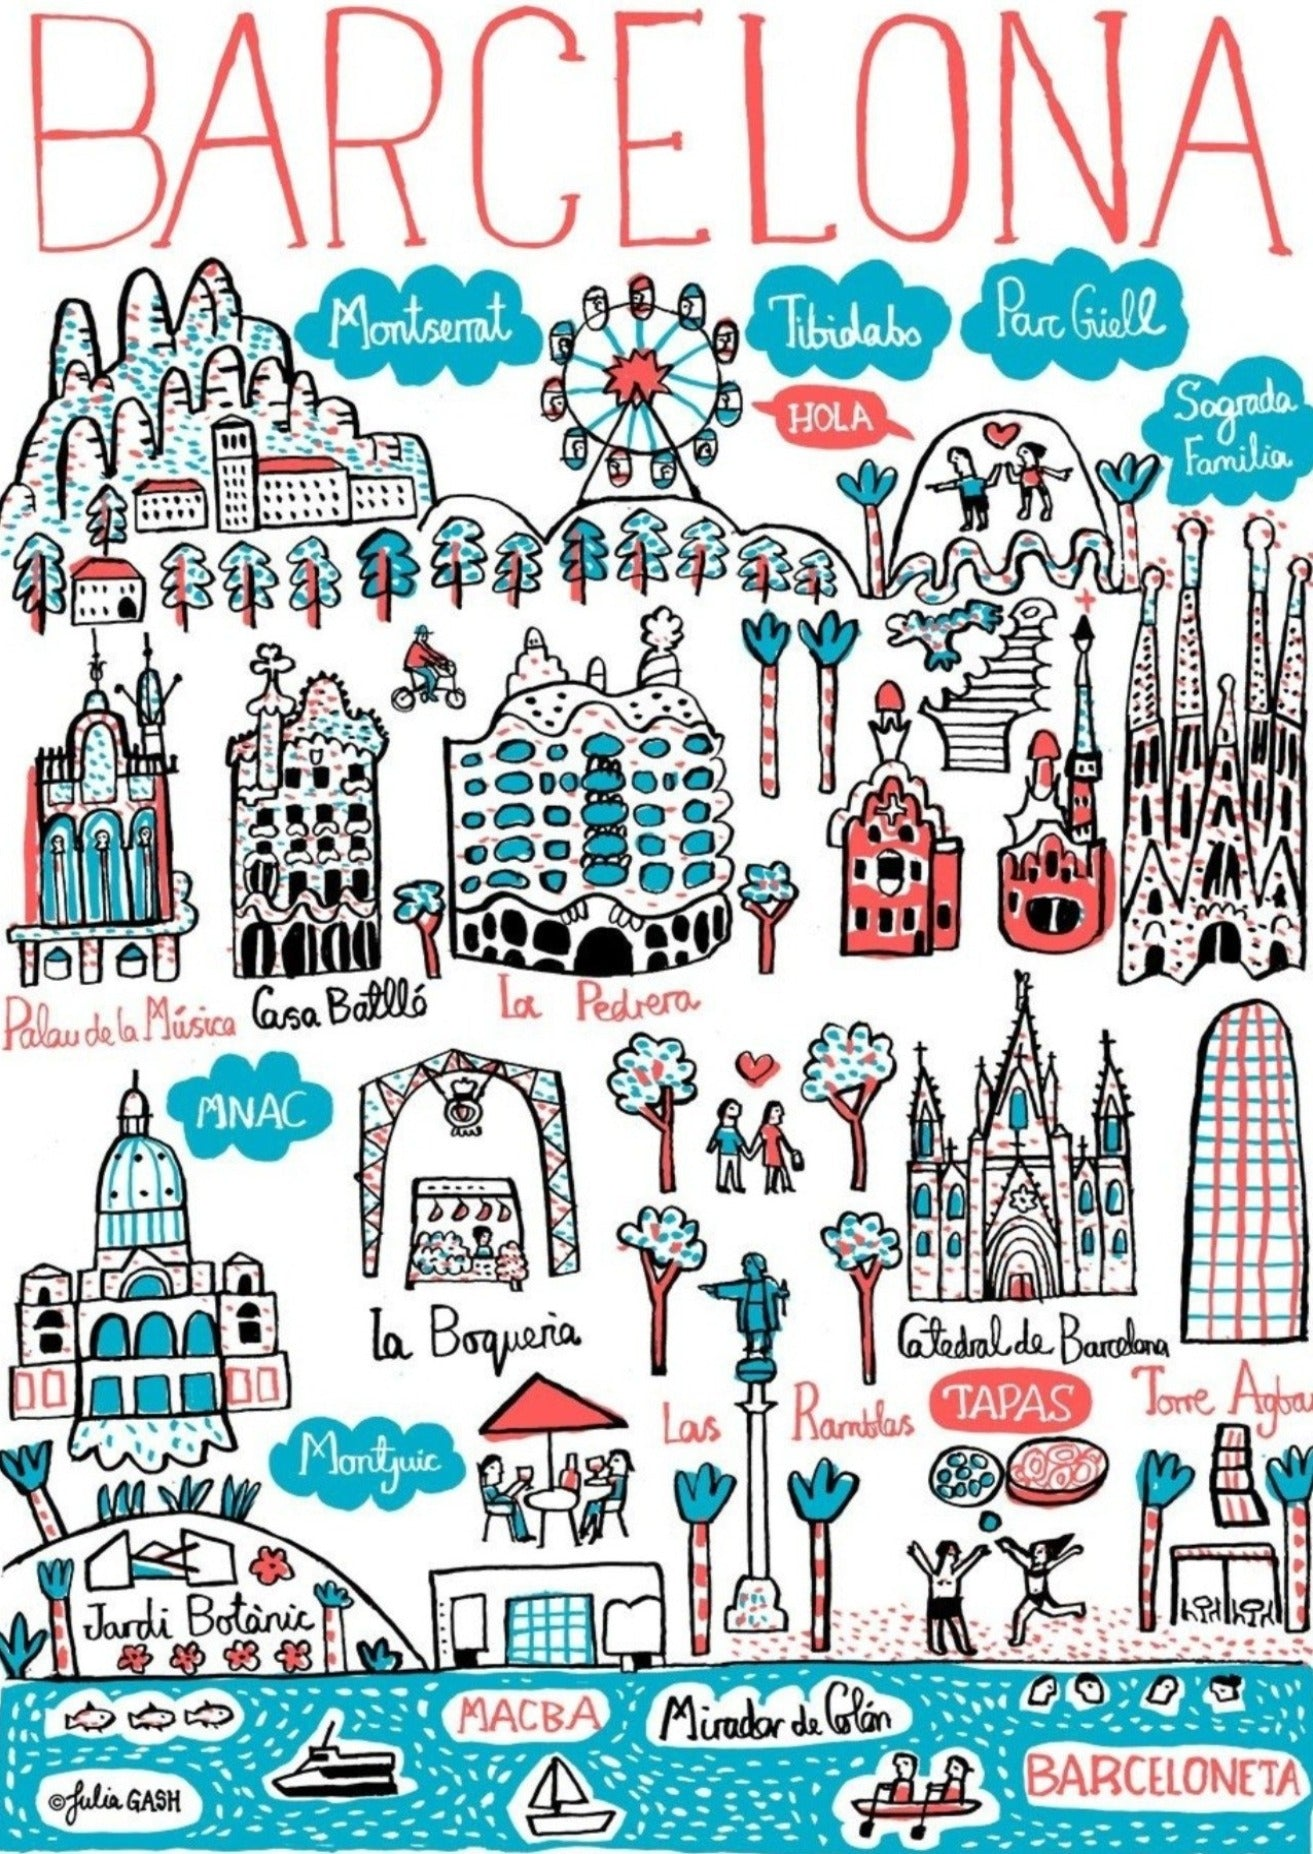 Barcelona Art Print by British Travel Artist Julia Gash - Julia Gash